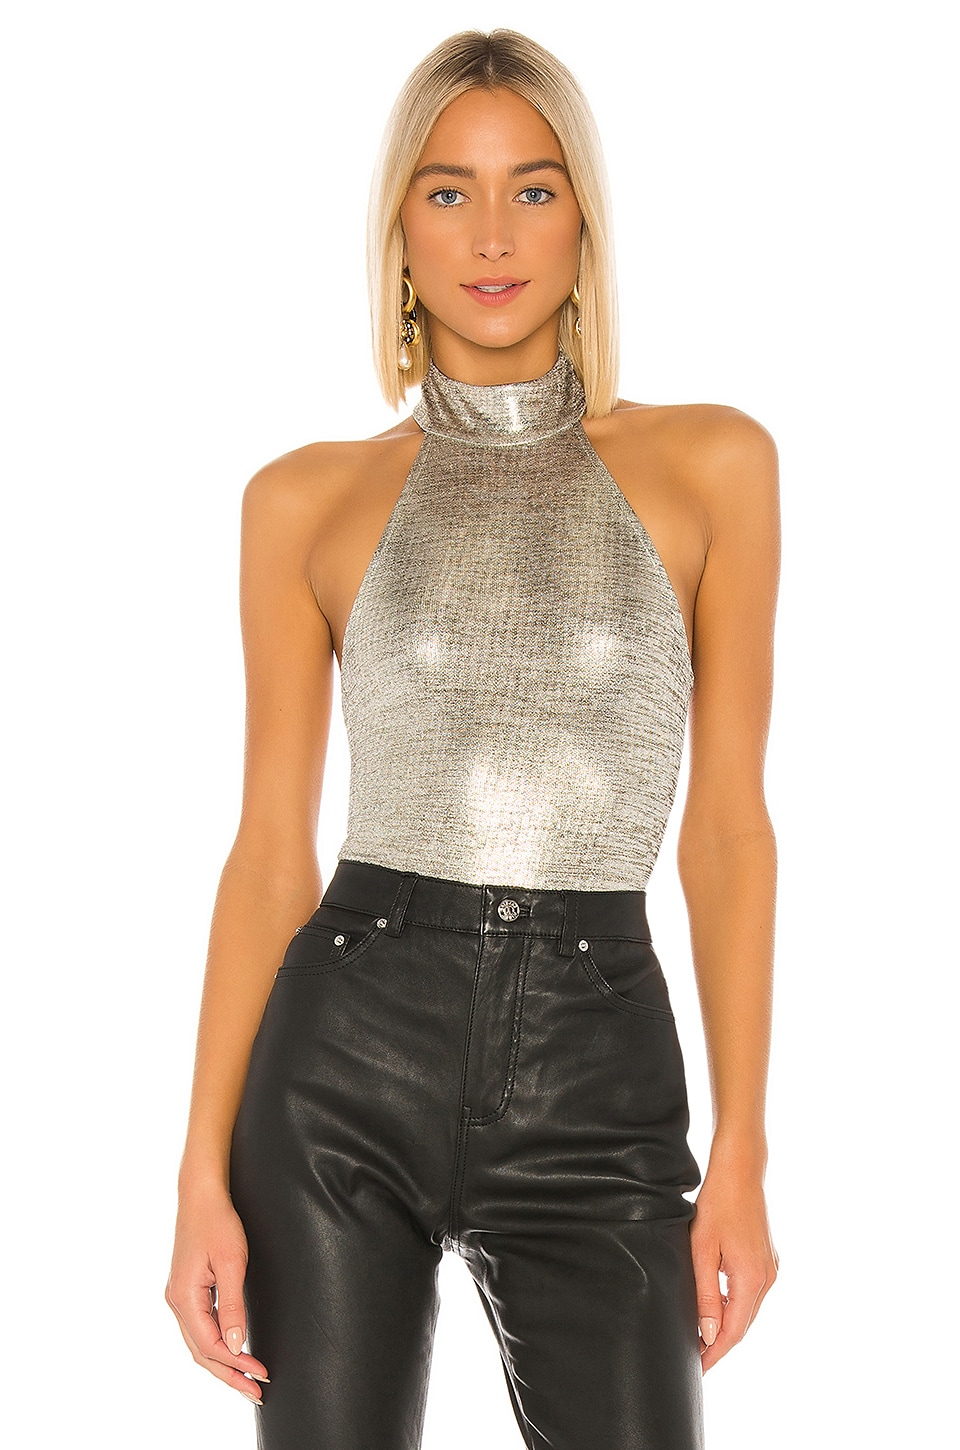 House of Harlow 1960 x REVOLVE Shae Bodysuit in Pewter